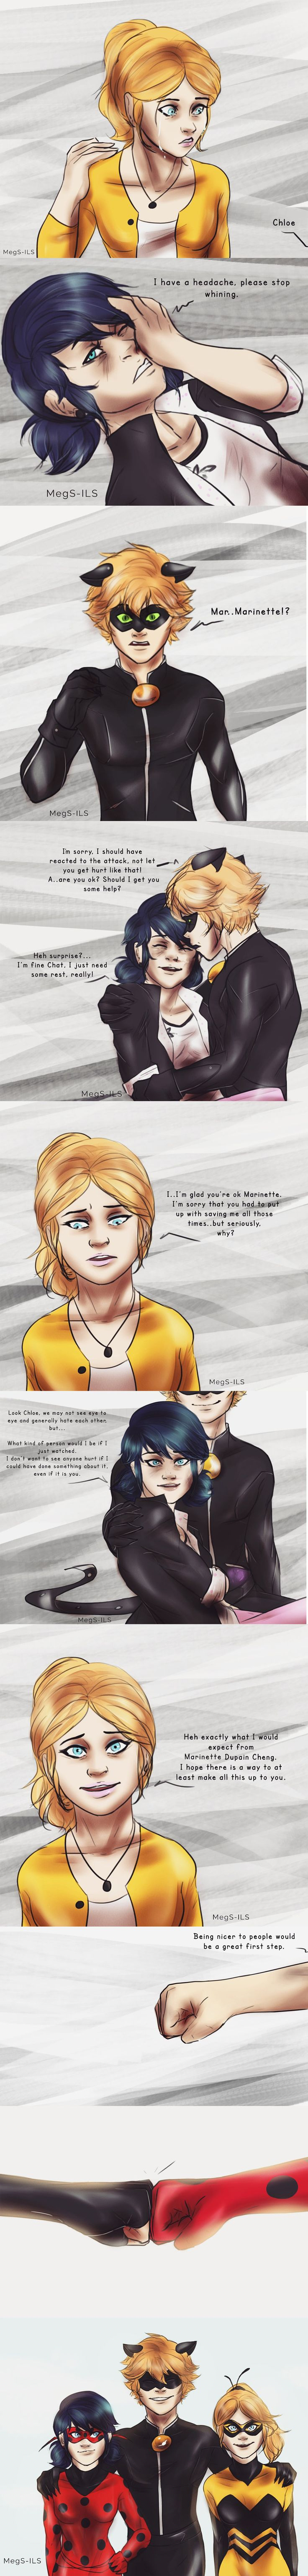 Realization prt4 by MegS-ILS on DeviantArt